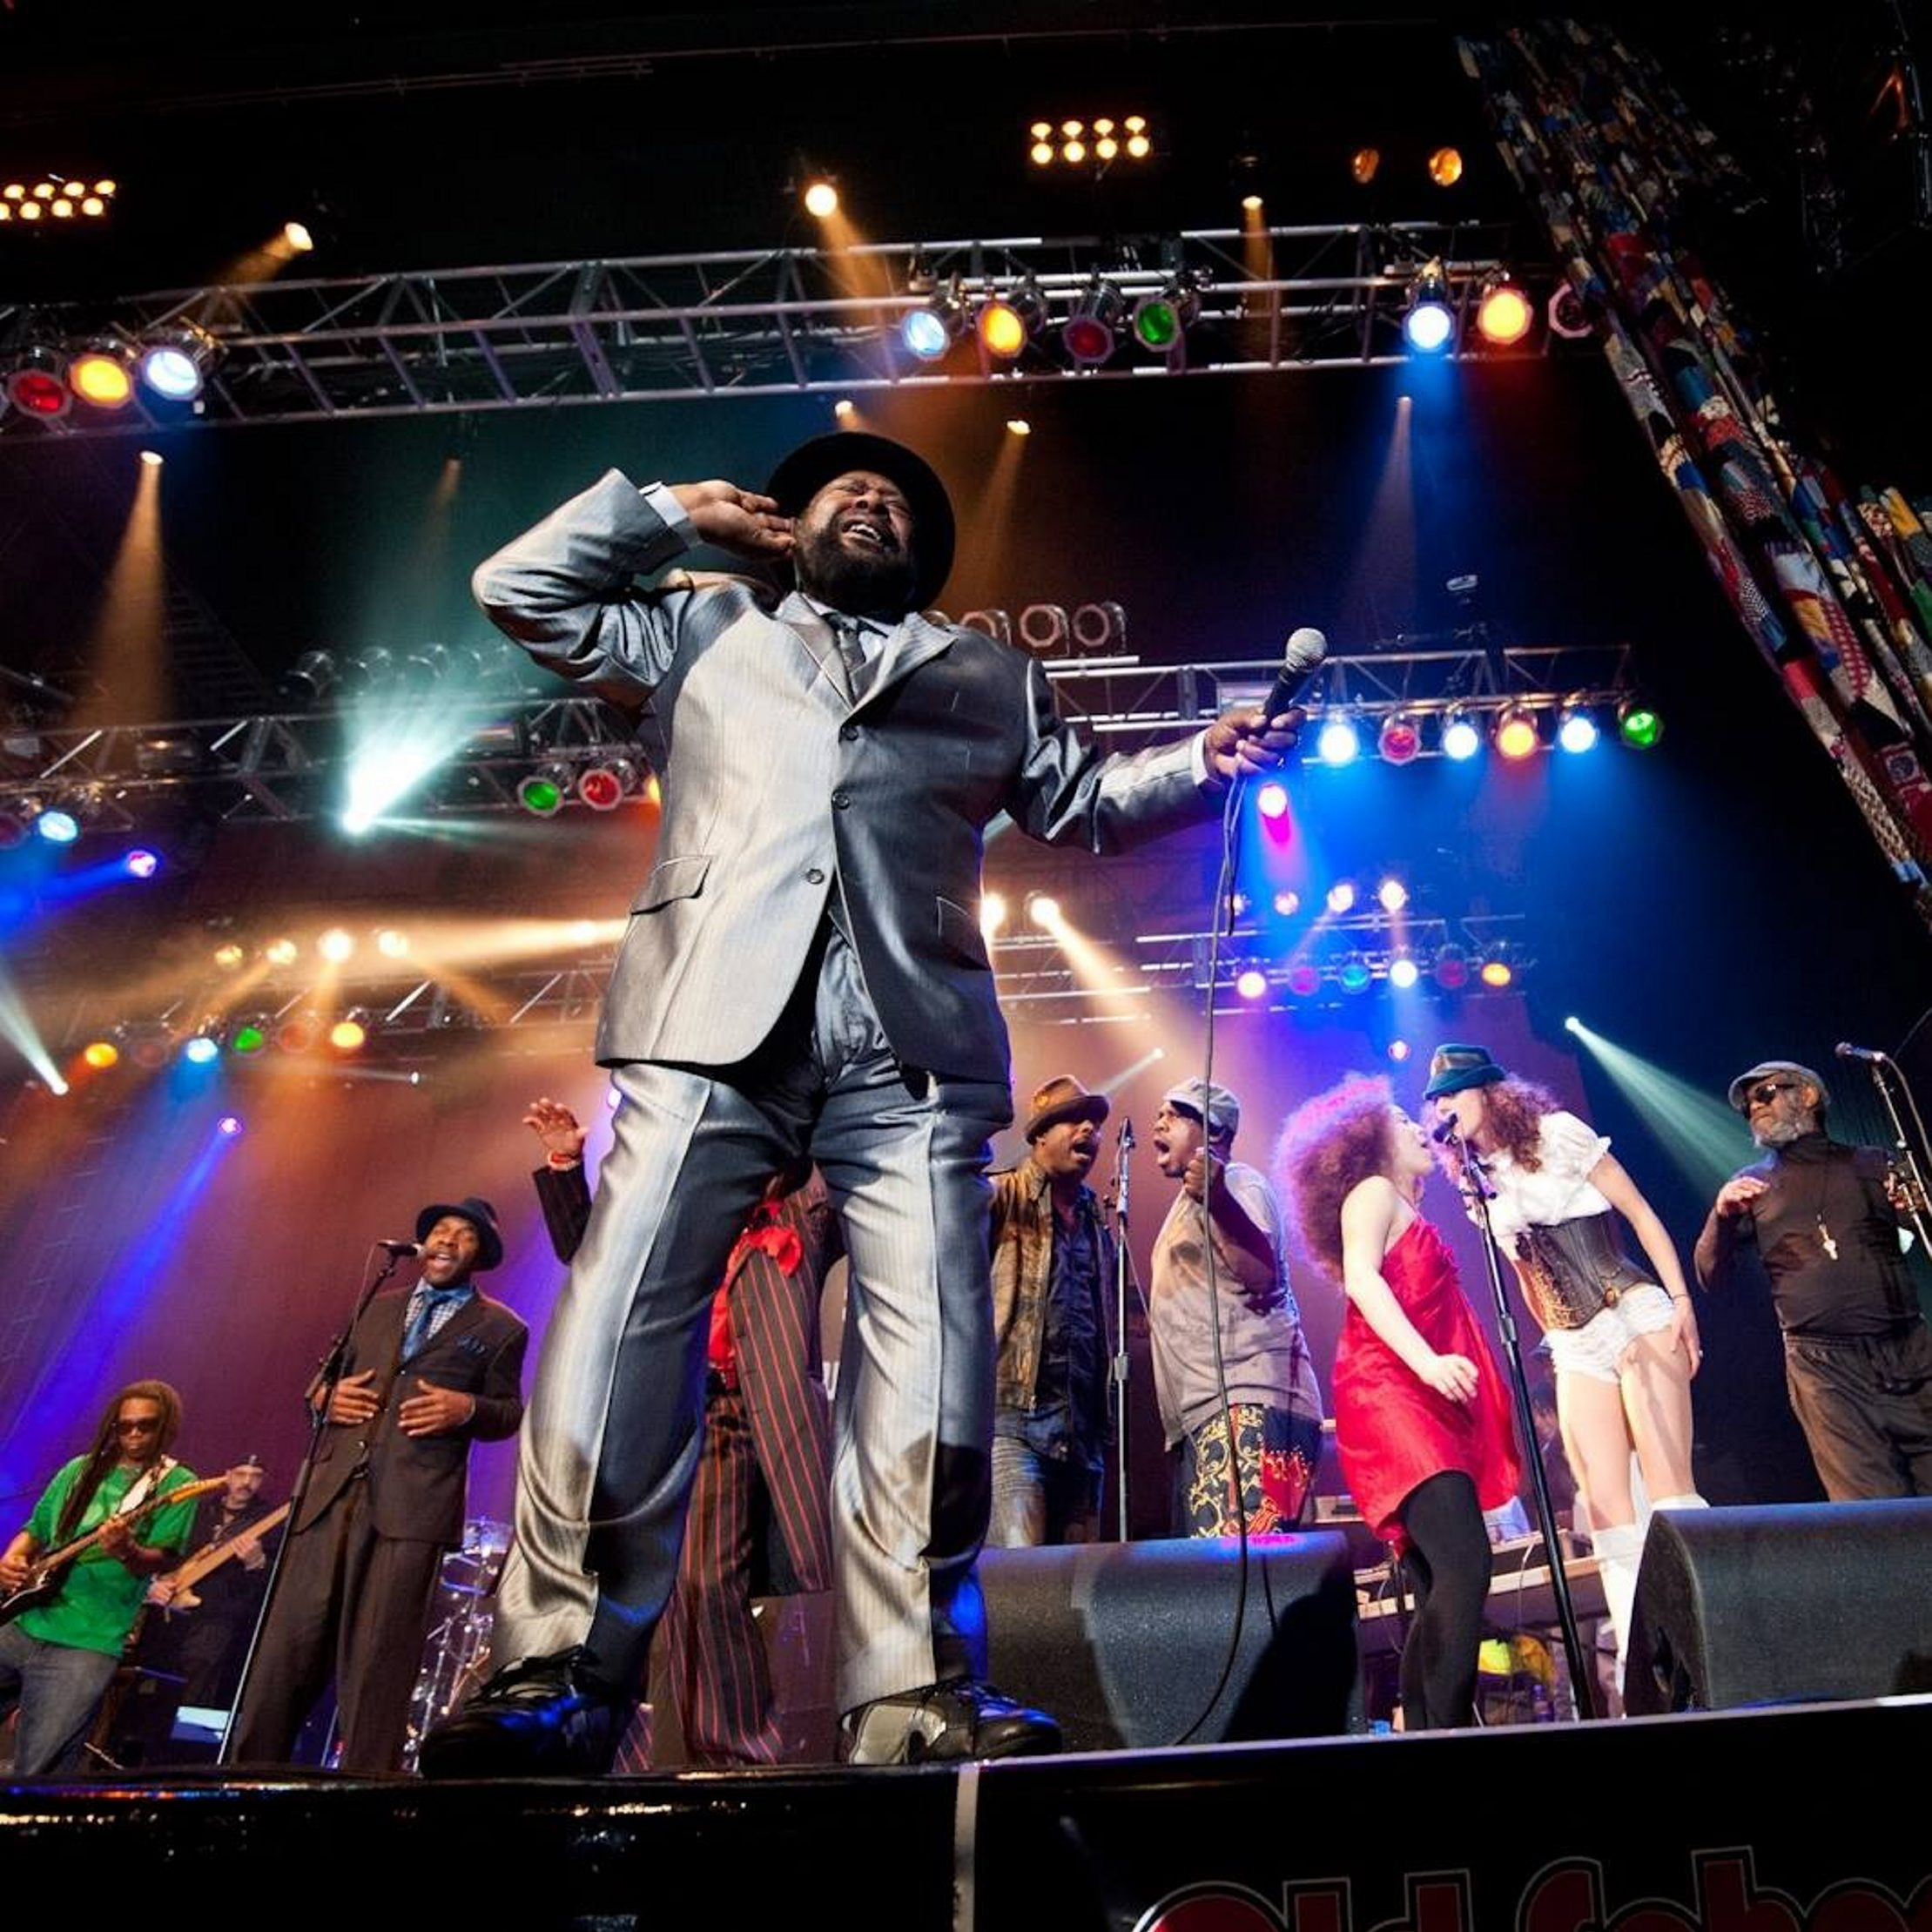 George Clinton and Parliament Funkadelic will play the Town Ballroom on Sunday.